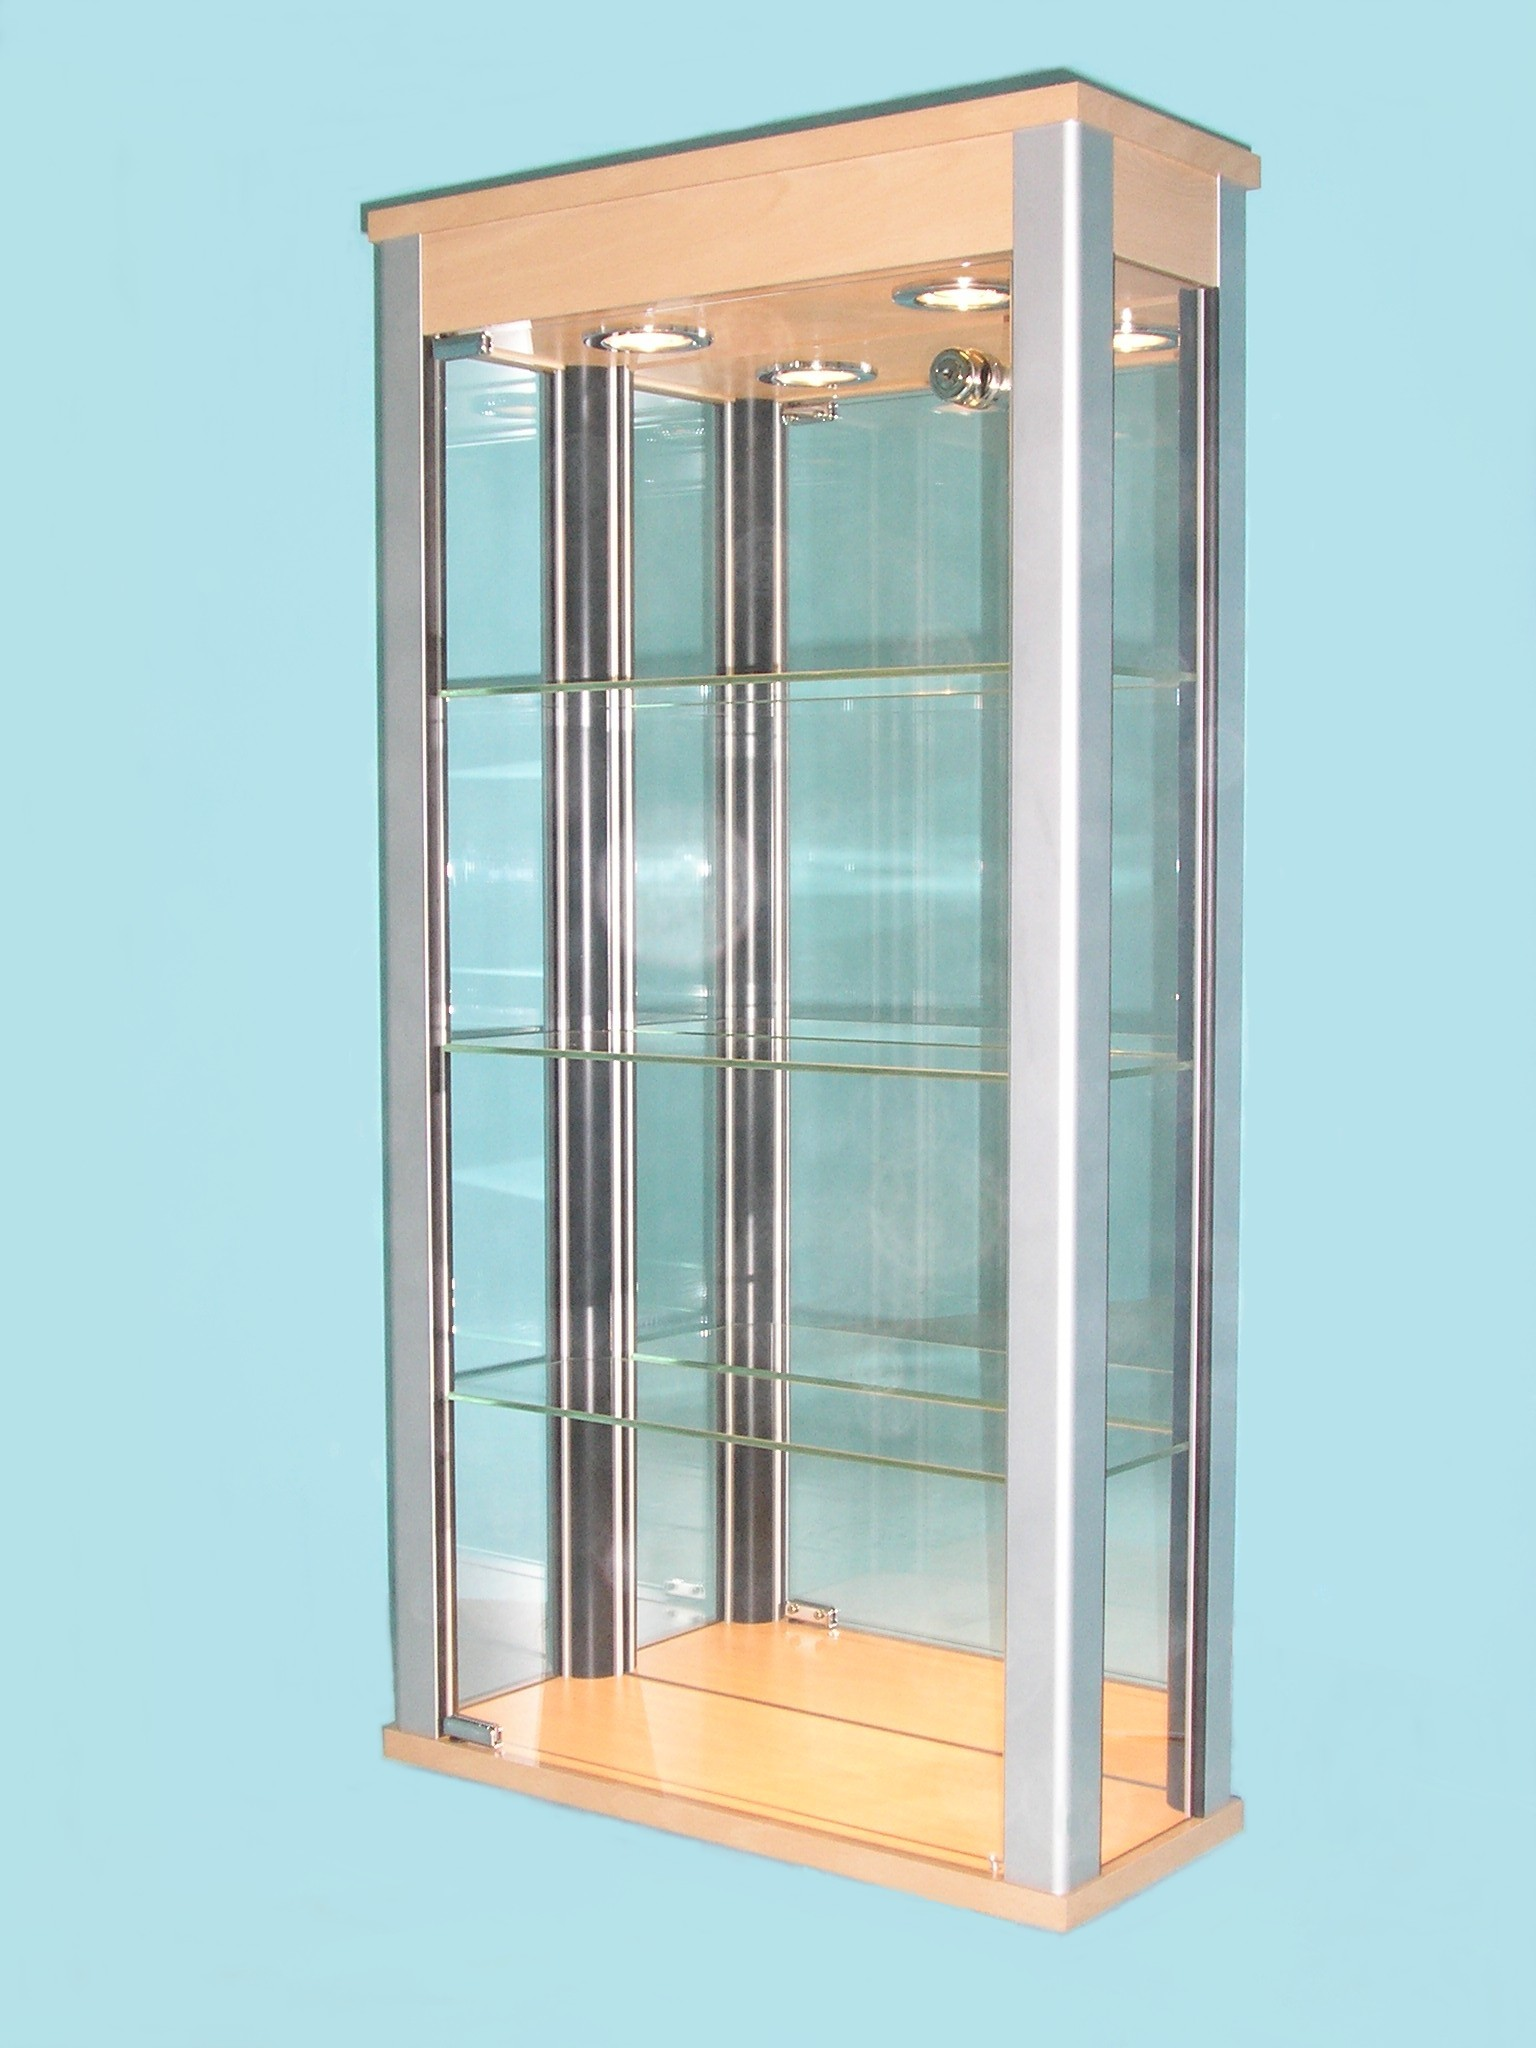 Designex Cabinets D33 beech glass display cabinets